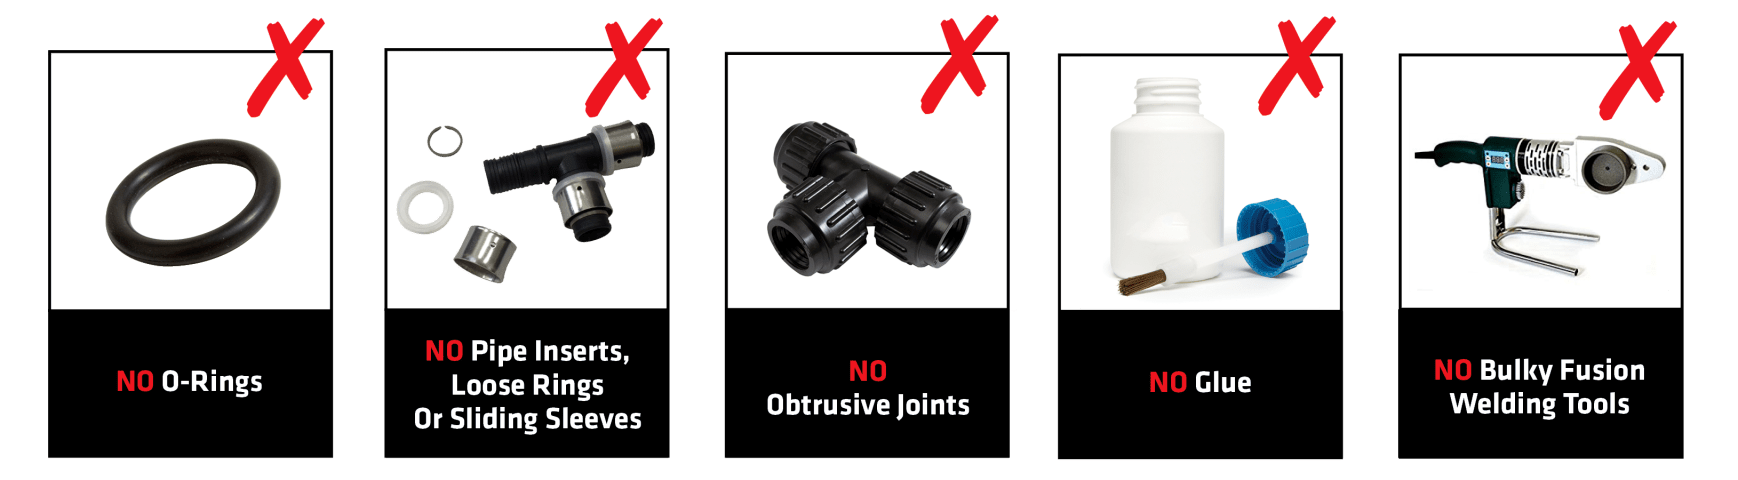 Buteline PE Fittings Infographic